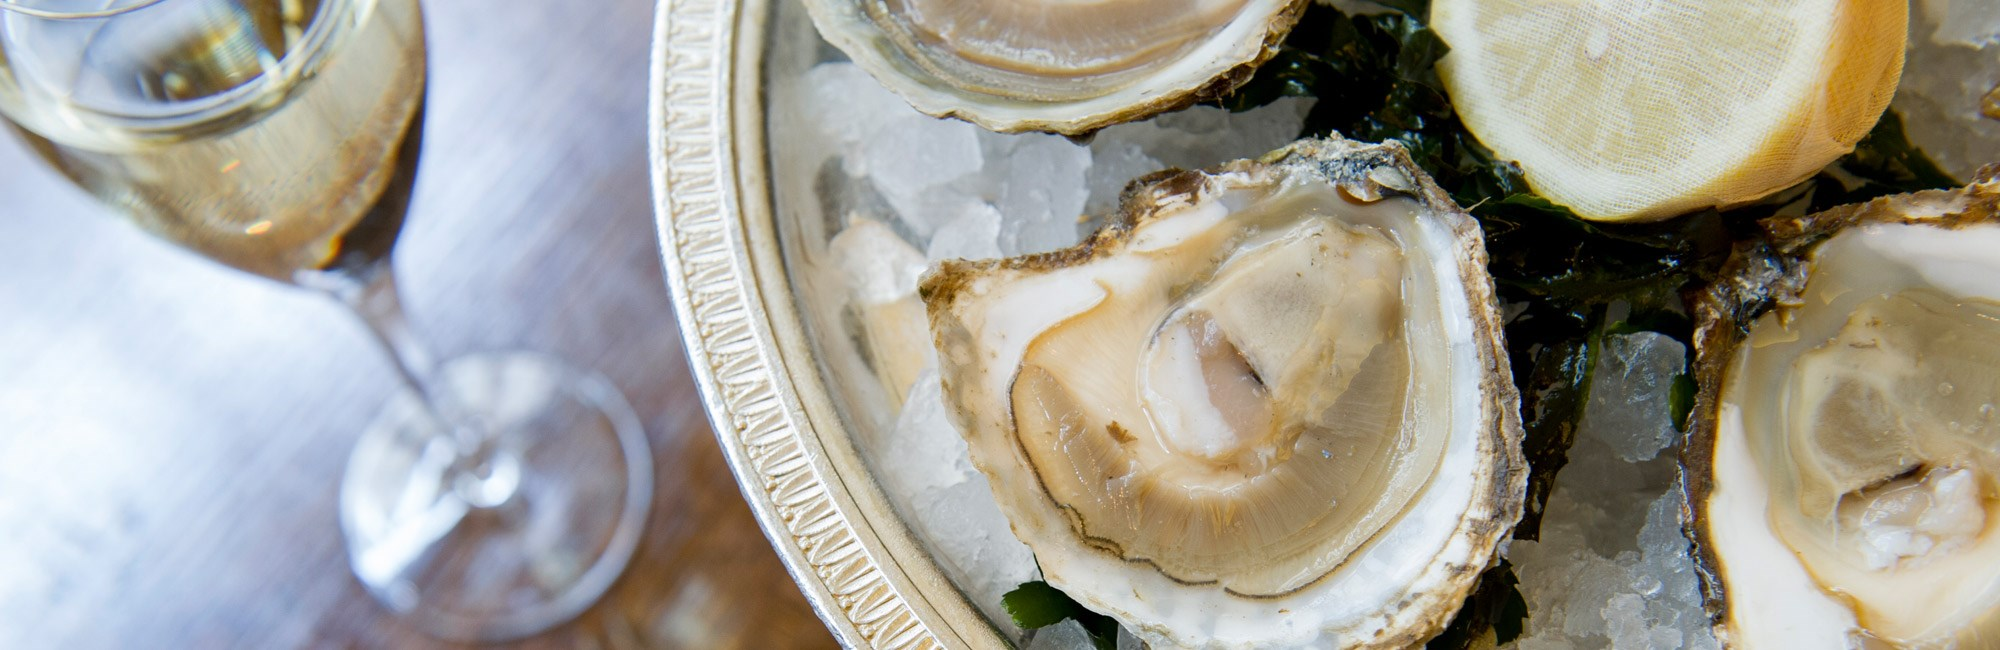 Enjoy Oyster and Champagne on the terrace at J Sheekey Atlantic Bar, Covent Garden